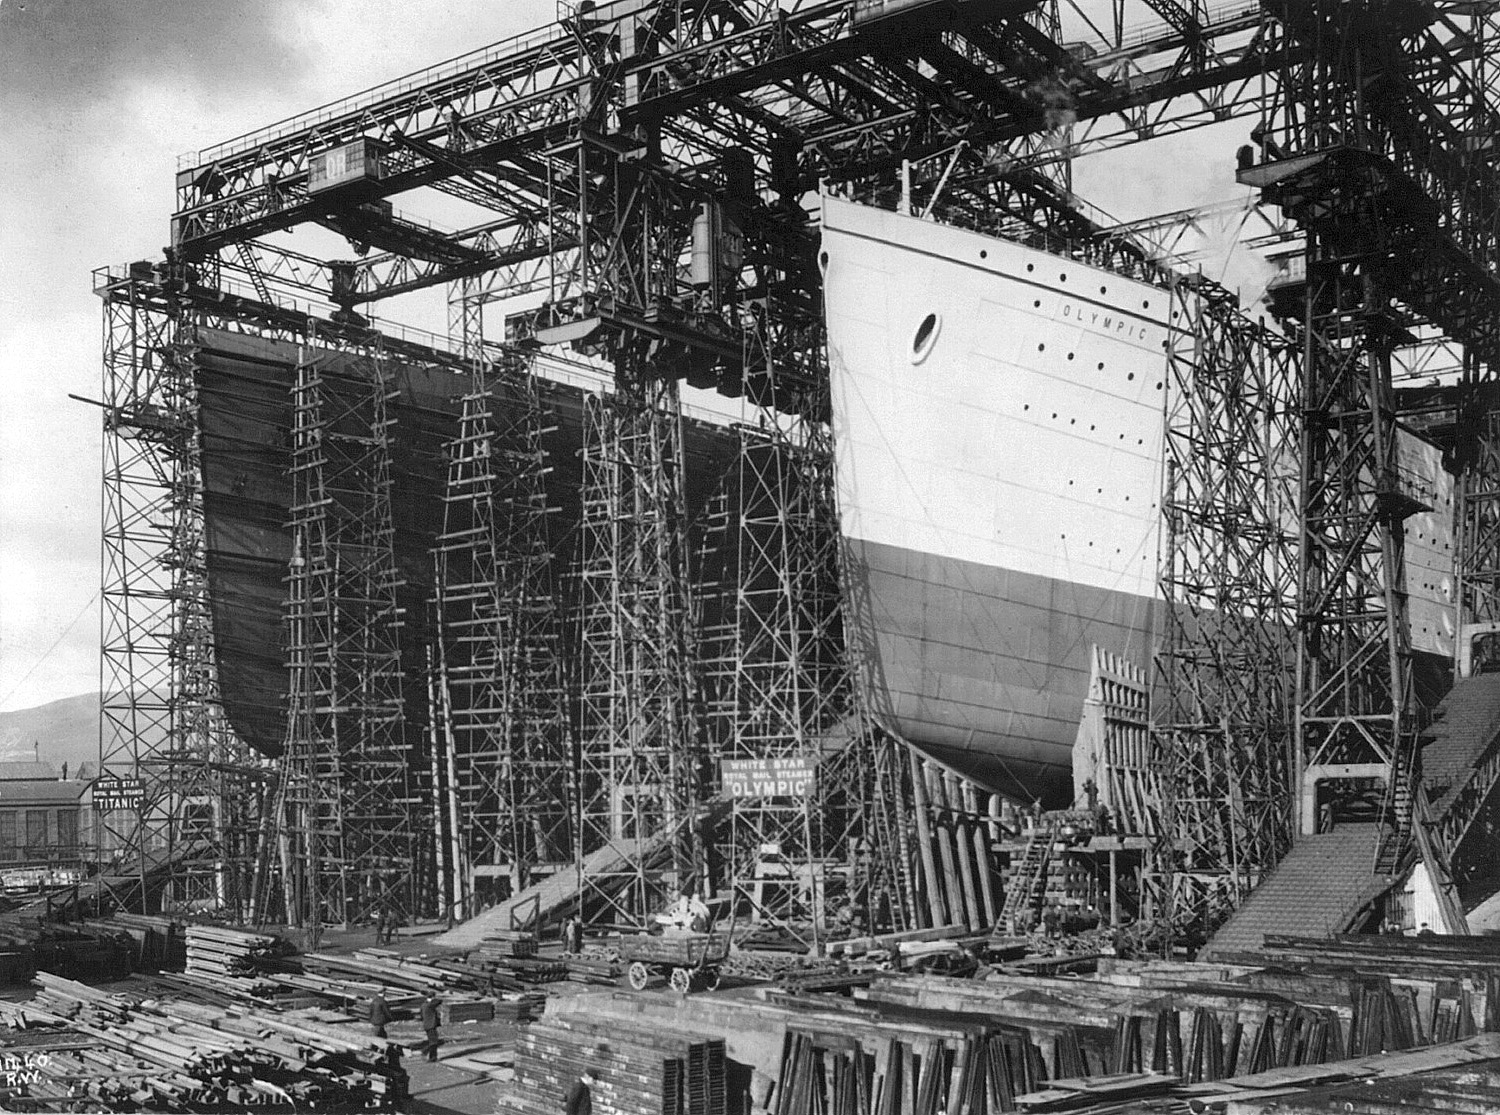 The build of the Titanic